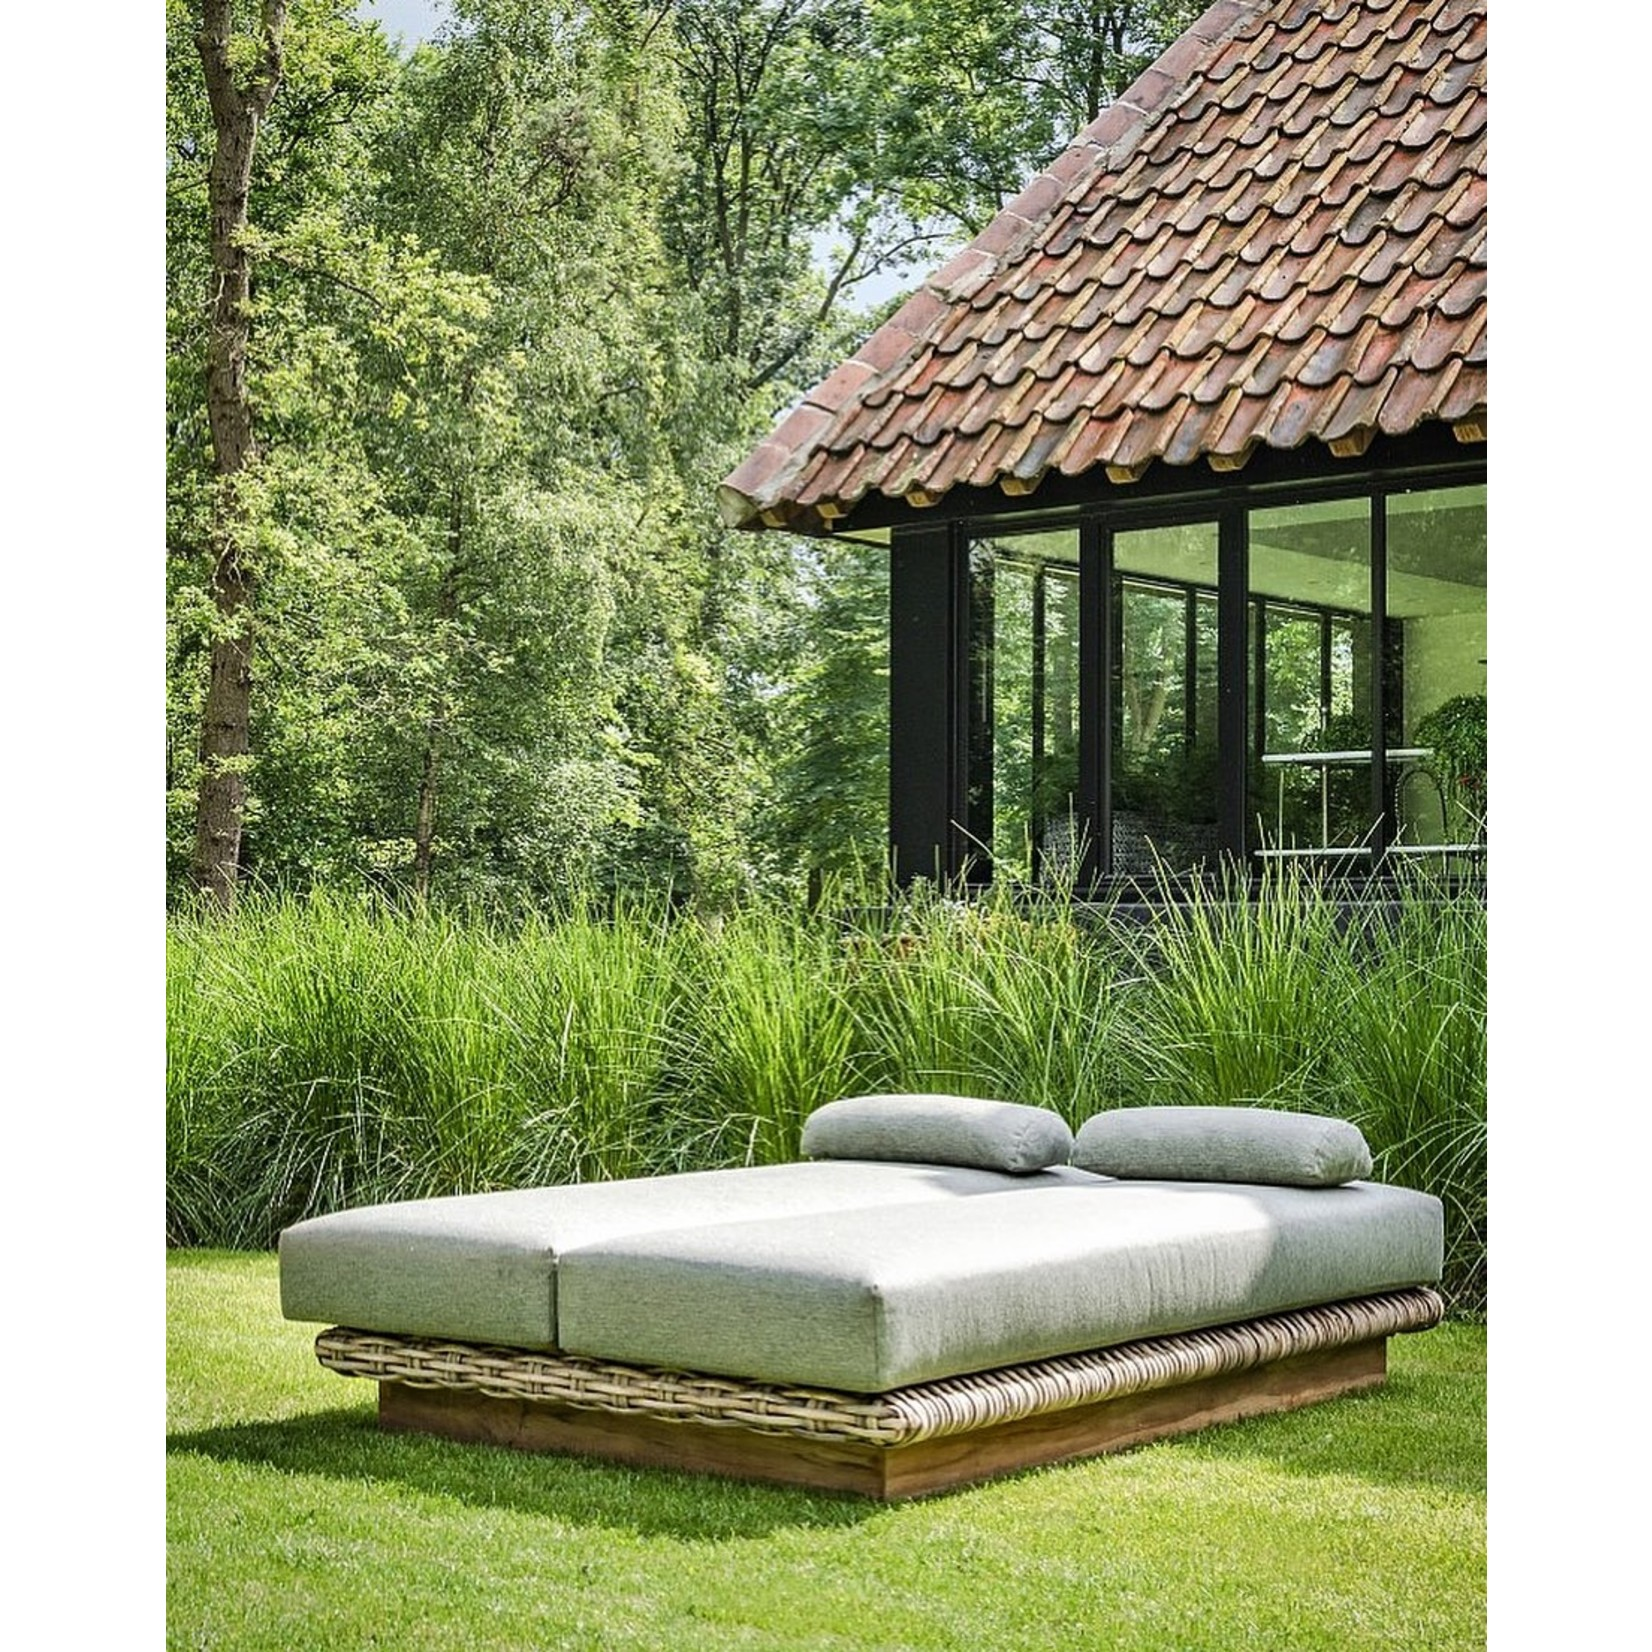 Gommaire Daybed Yasmin | CL Rotin + Coussin